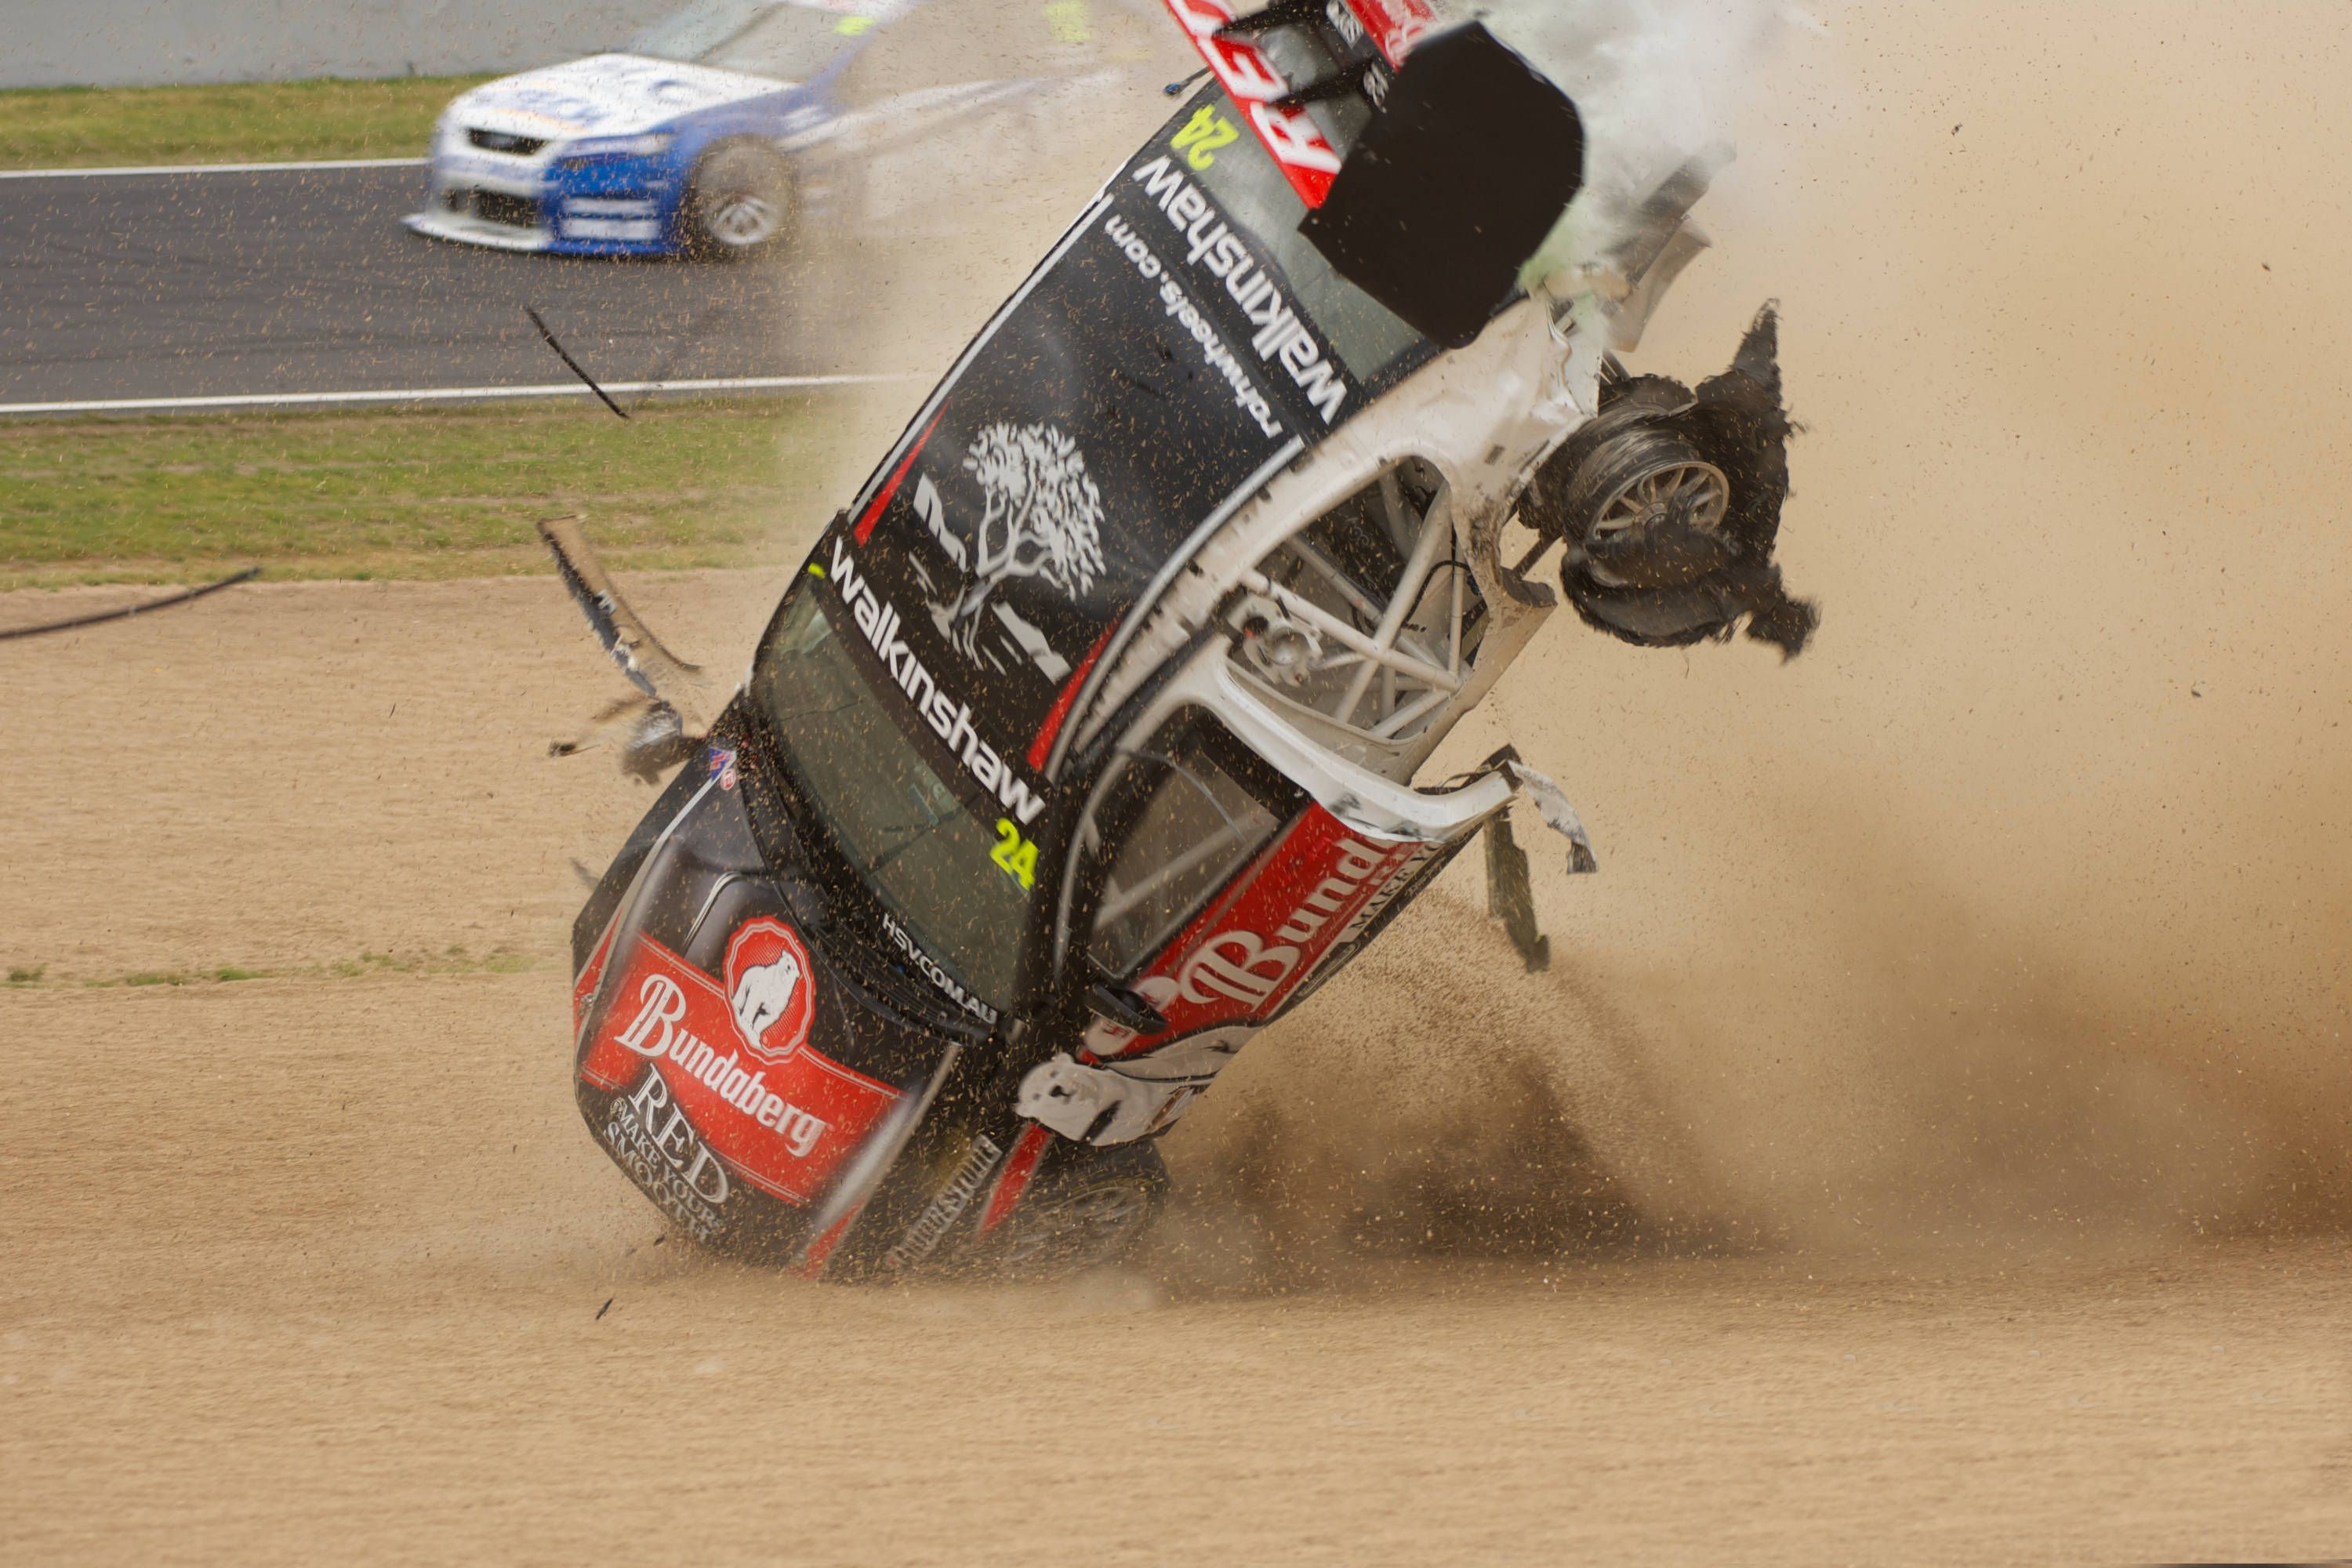 Pin by Celio Poleza on Accident | Pinterest | V8 supercars and 4x4